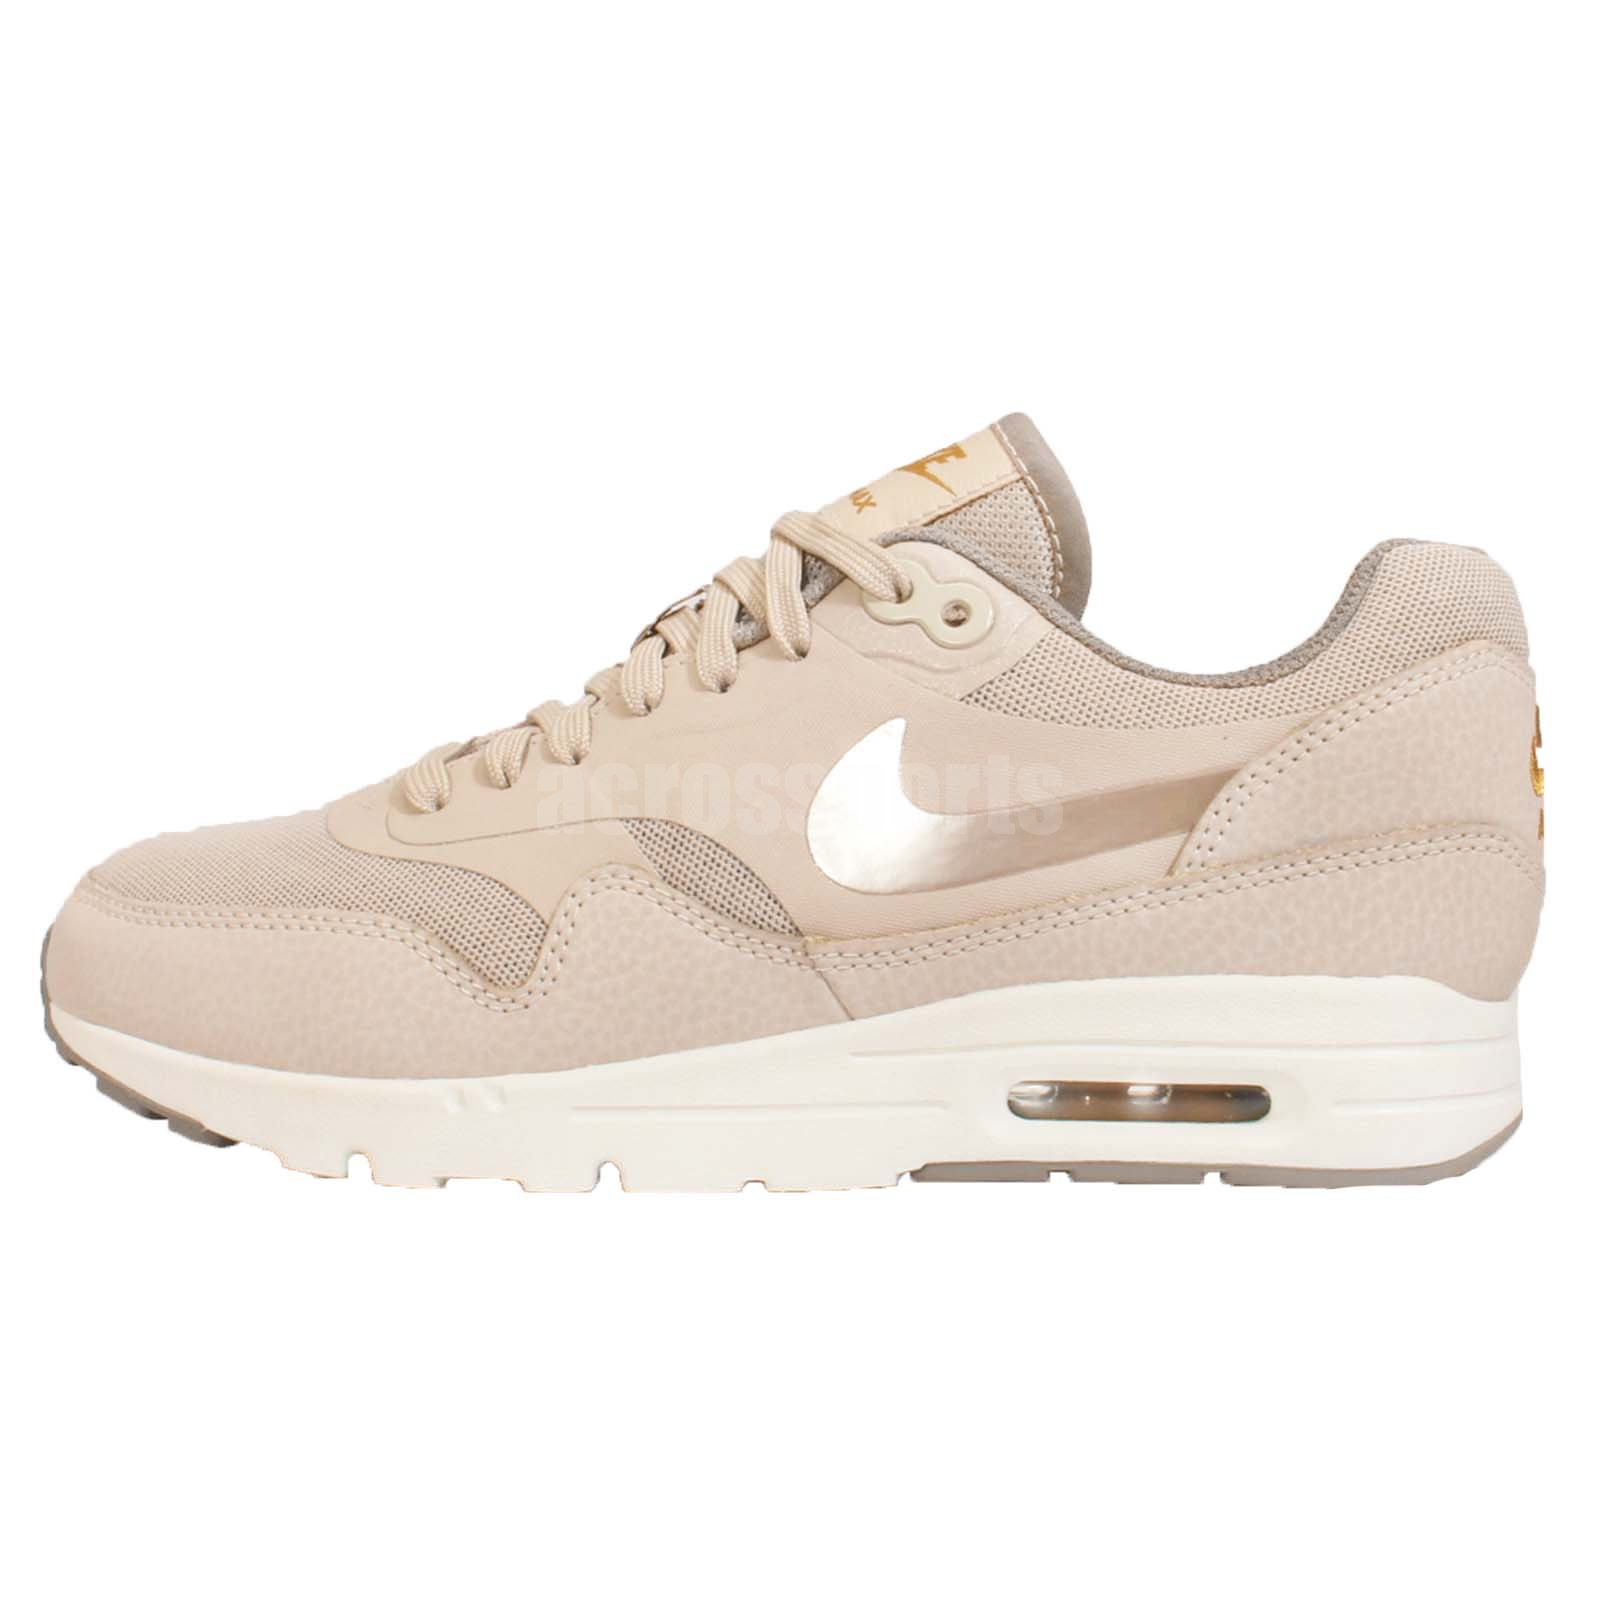 Nike Air Max 1 Ultra Essentials Women's